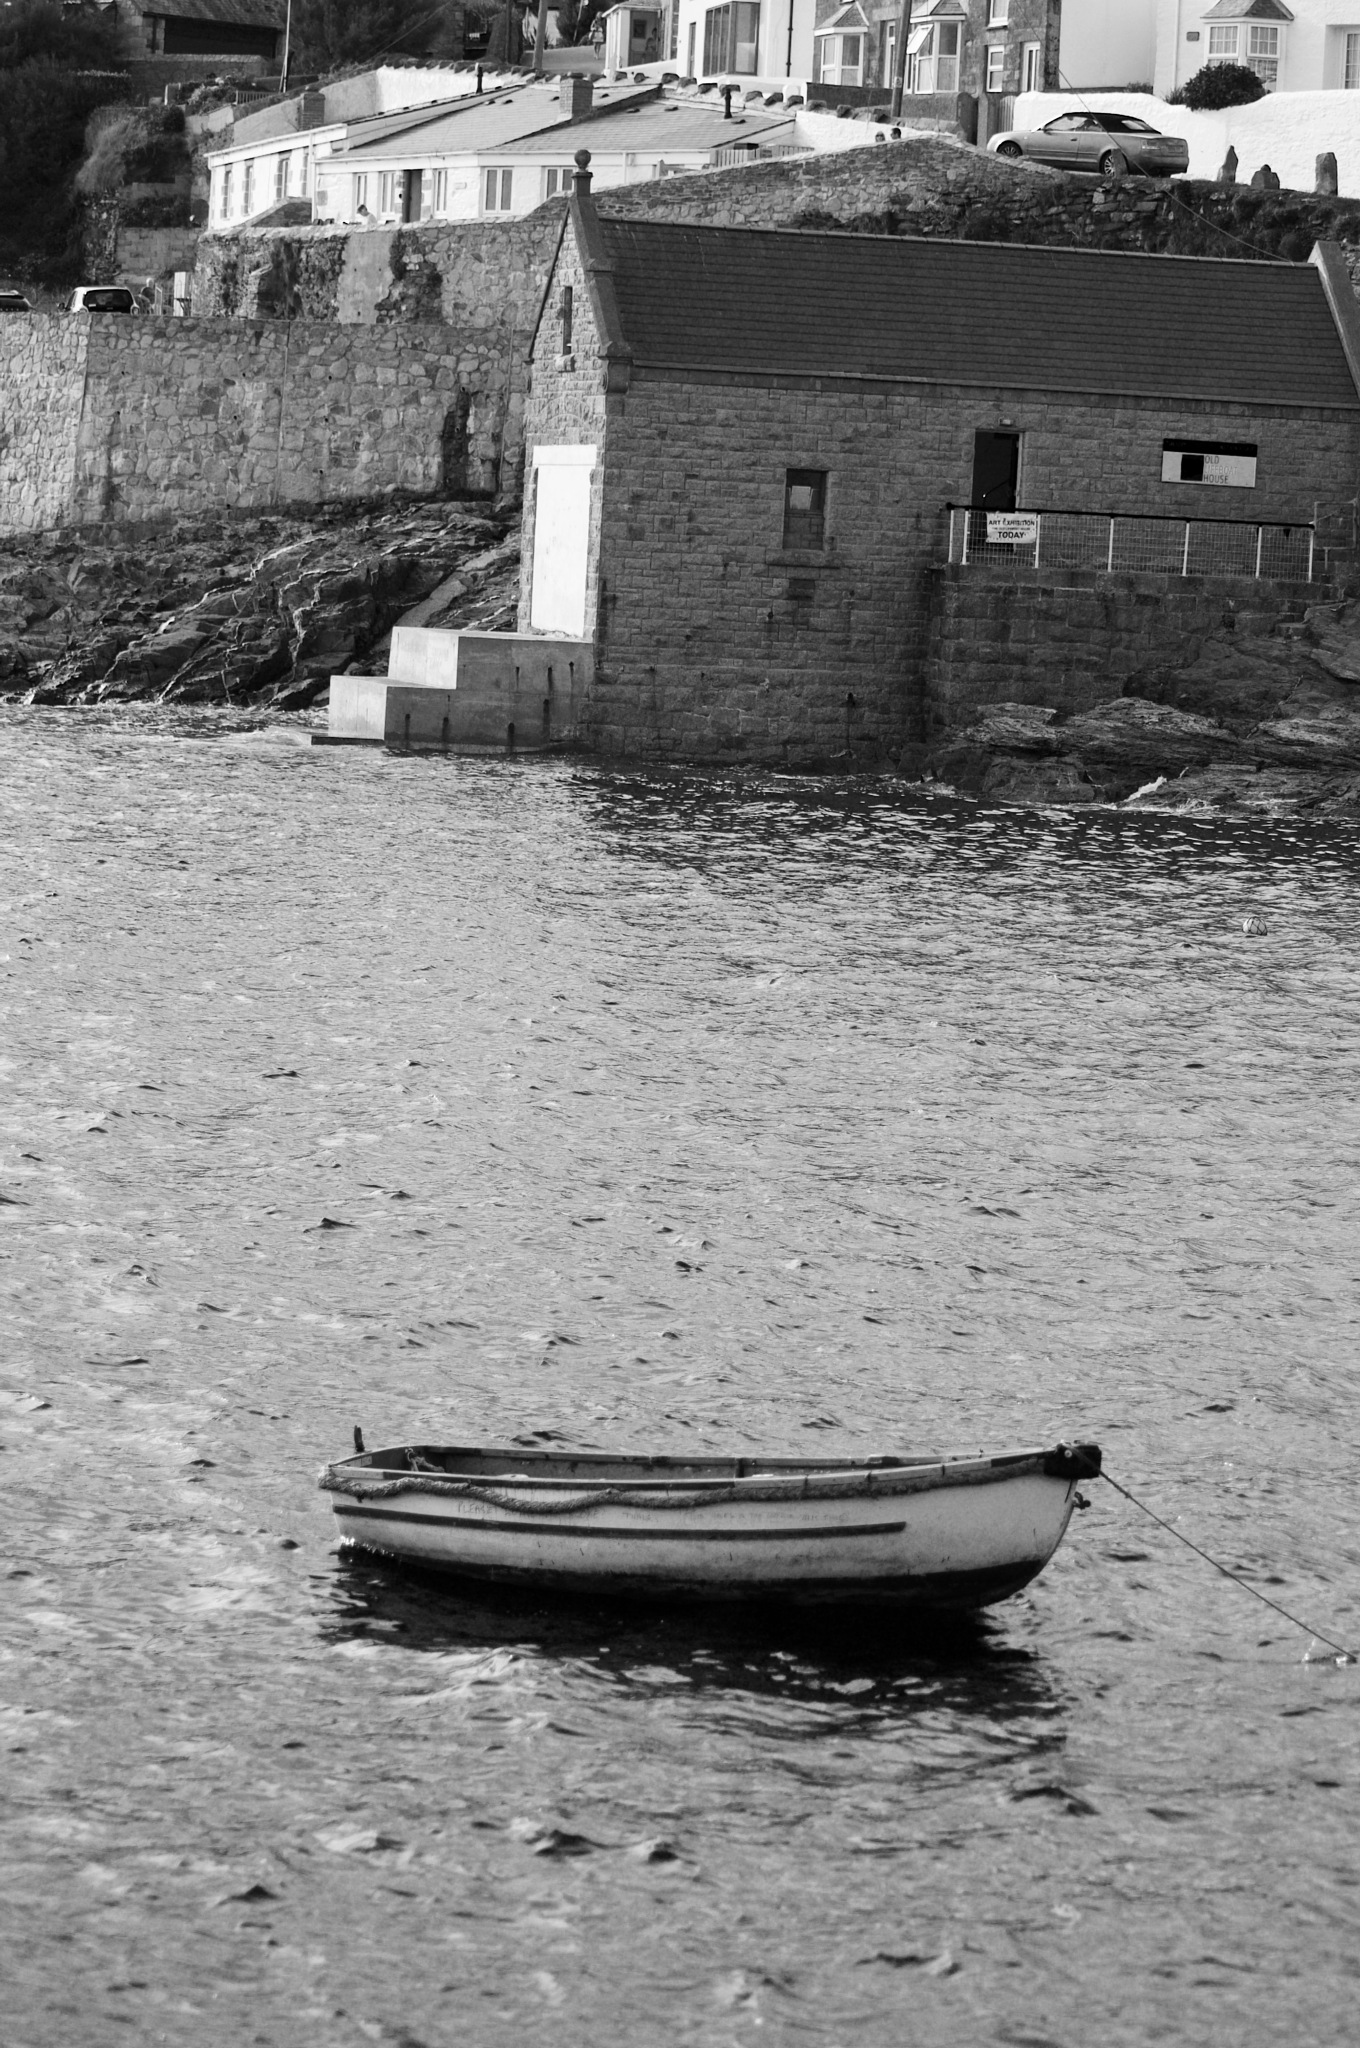 Porthleven by audrey.rogers.56